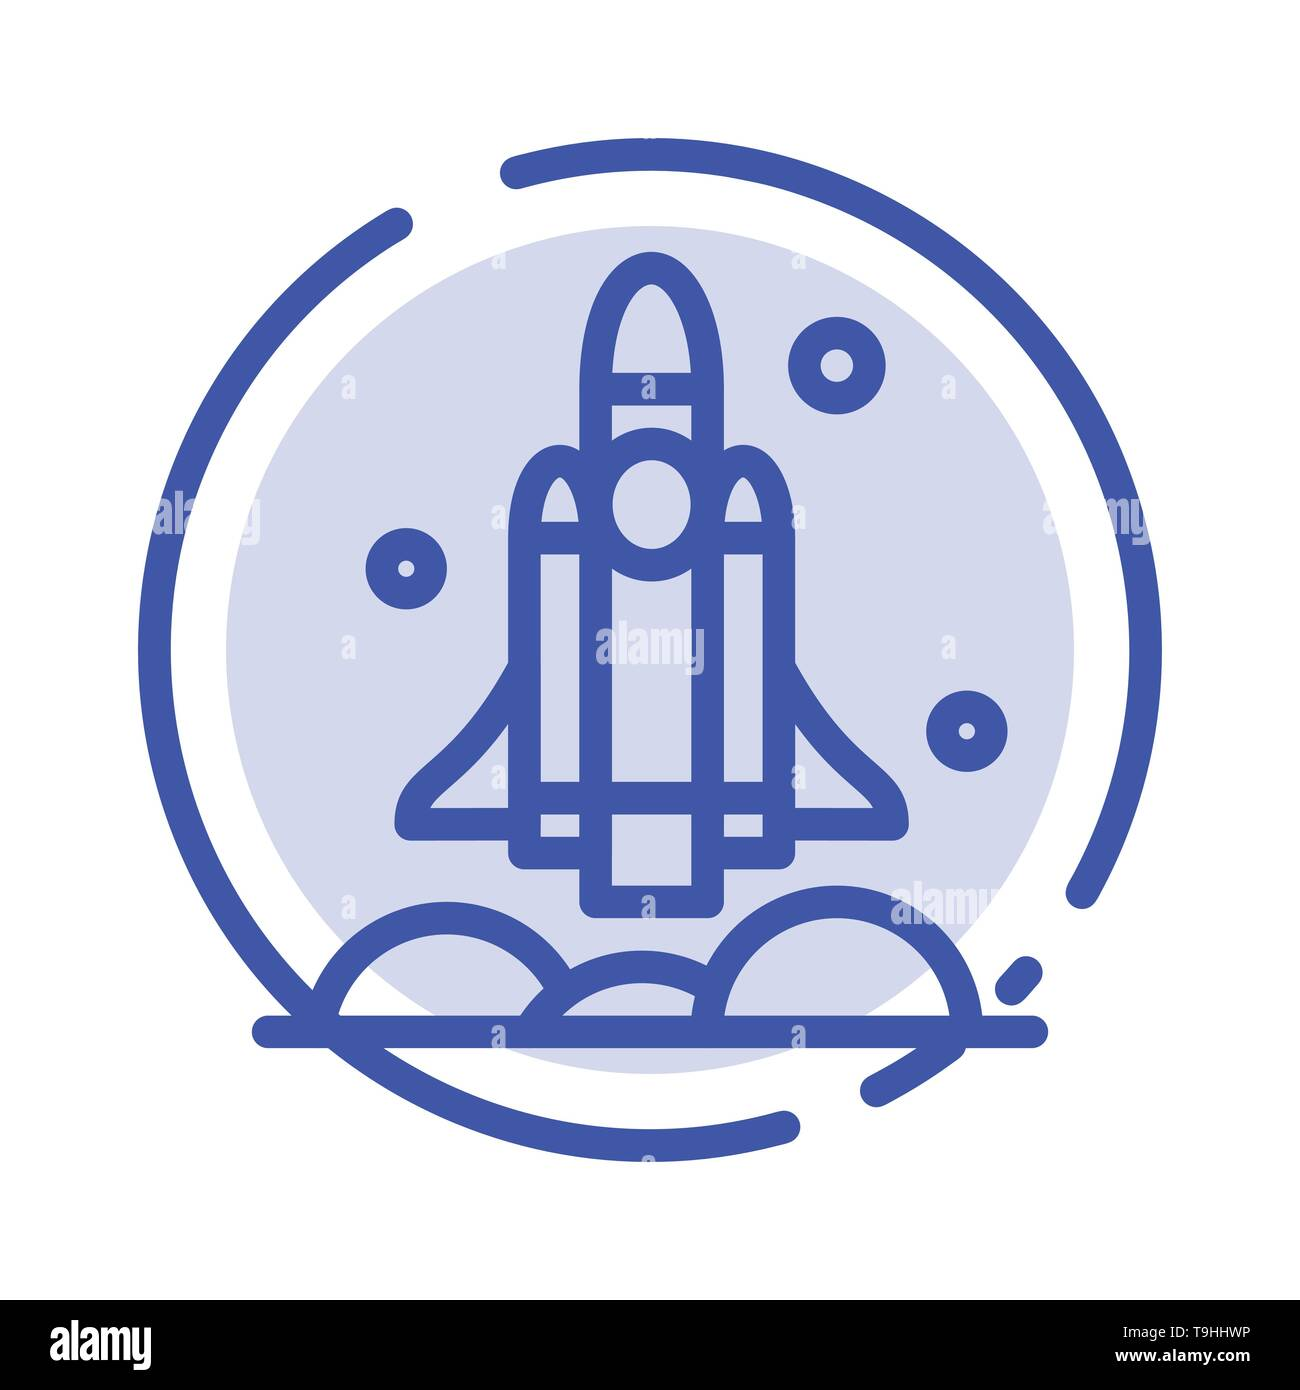 Launcher, Rocket, Spaceship, Transport, Usa Blue Dotted Line Line Icon - Stock Image